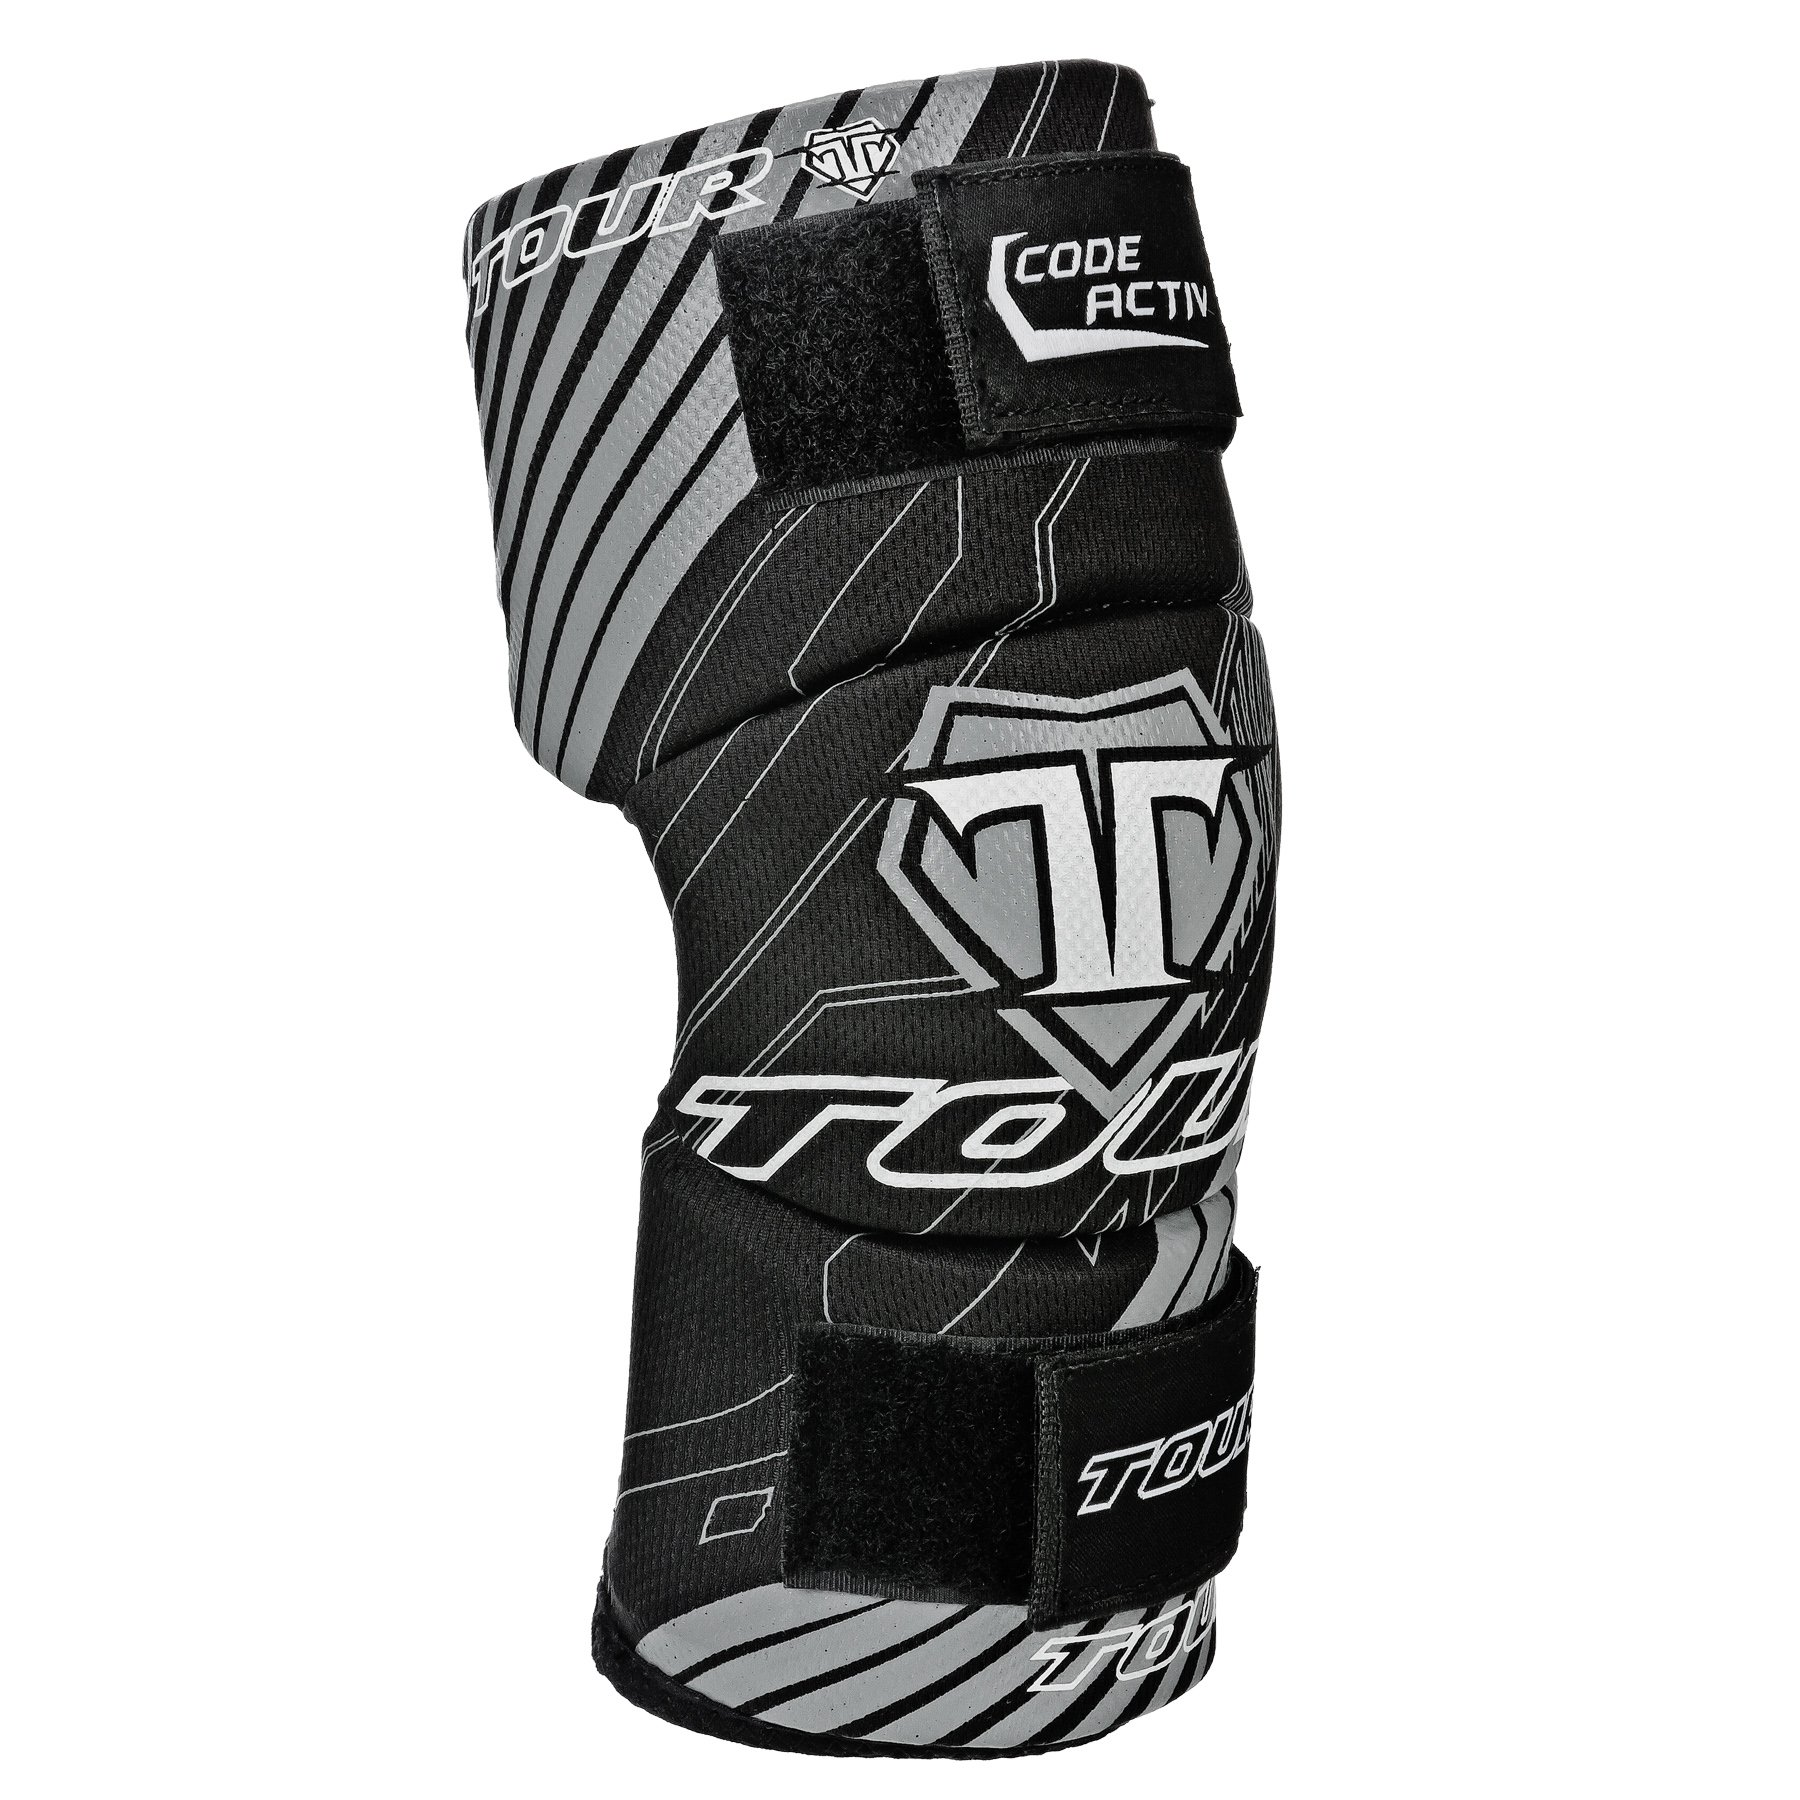 Tour Hockey Adult Code Activ Elbow Pad, Small